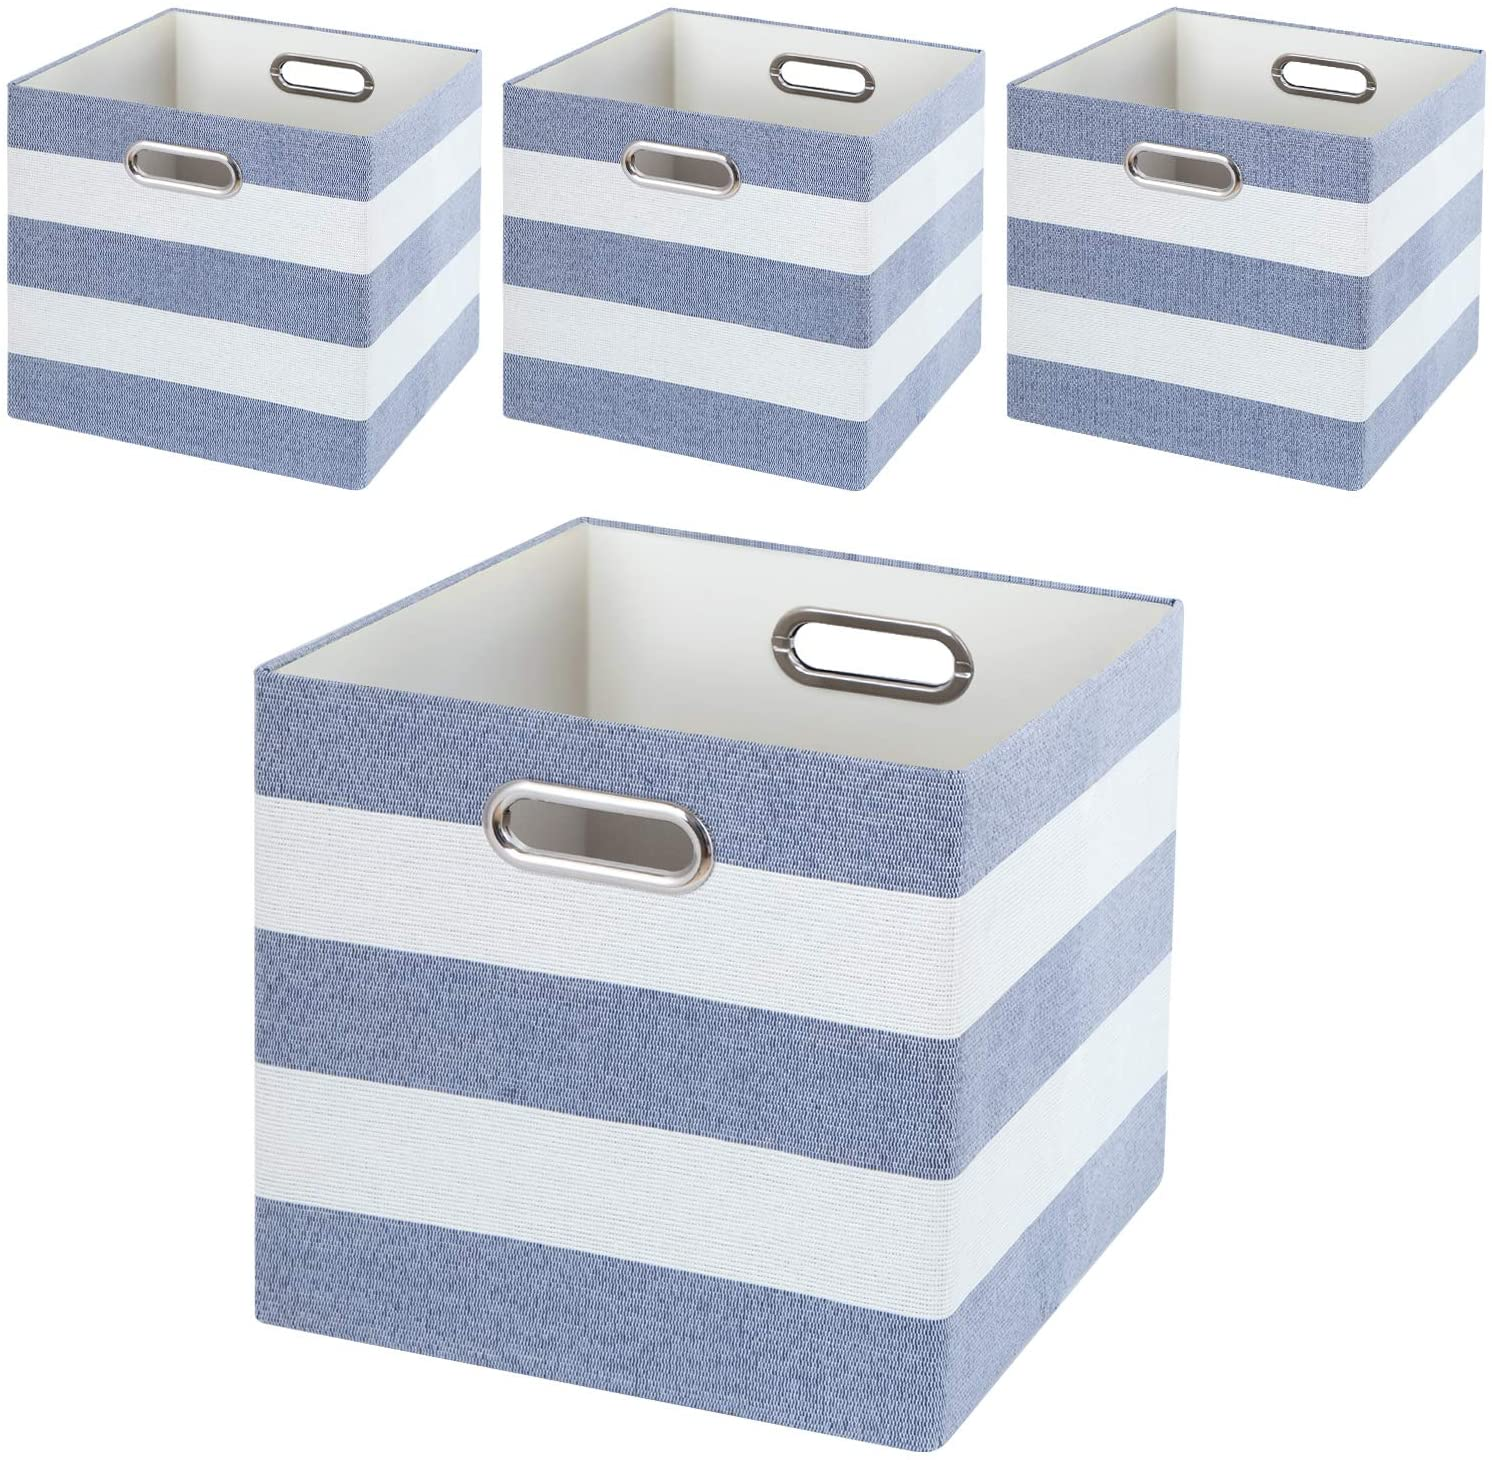 Posprica Storage Basket Bins,11×11 Collapsible Storage Cubes Fabric Drawers for Nurseries,Offices,Closets,Home Décor (4pcs, Blue-White Striped)